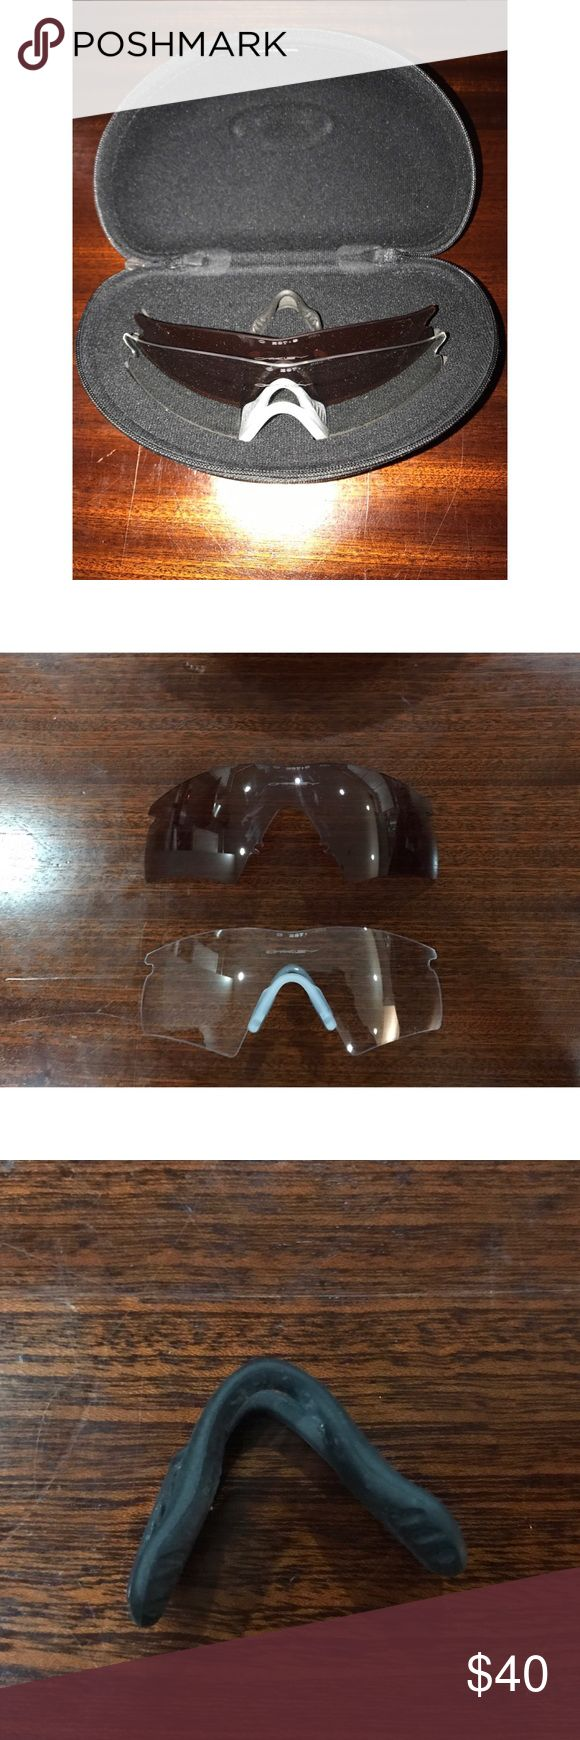 Oakley Ballistic Replacement Lens and Nose Piece Oakley Ballistic Replacement Lens and Nose Piece including Oakley hard case - Brand New never been used.. my husband lost the frames and a pair of lenses that came with the set. 🤦🏼♀️ Oakley Accessories Sunglasses